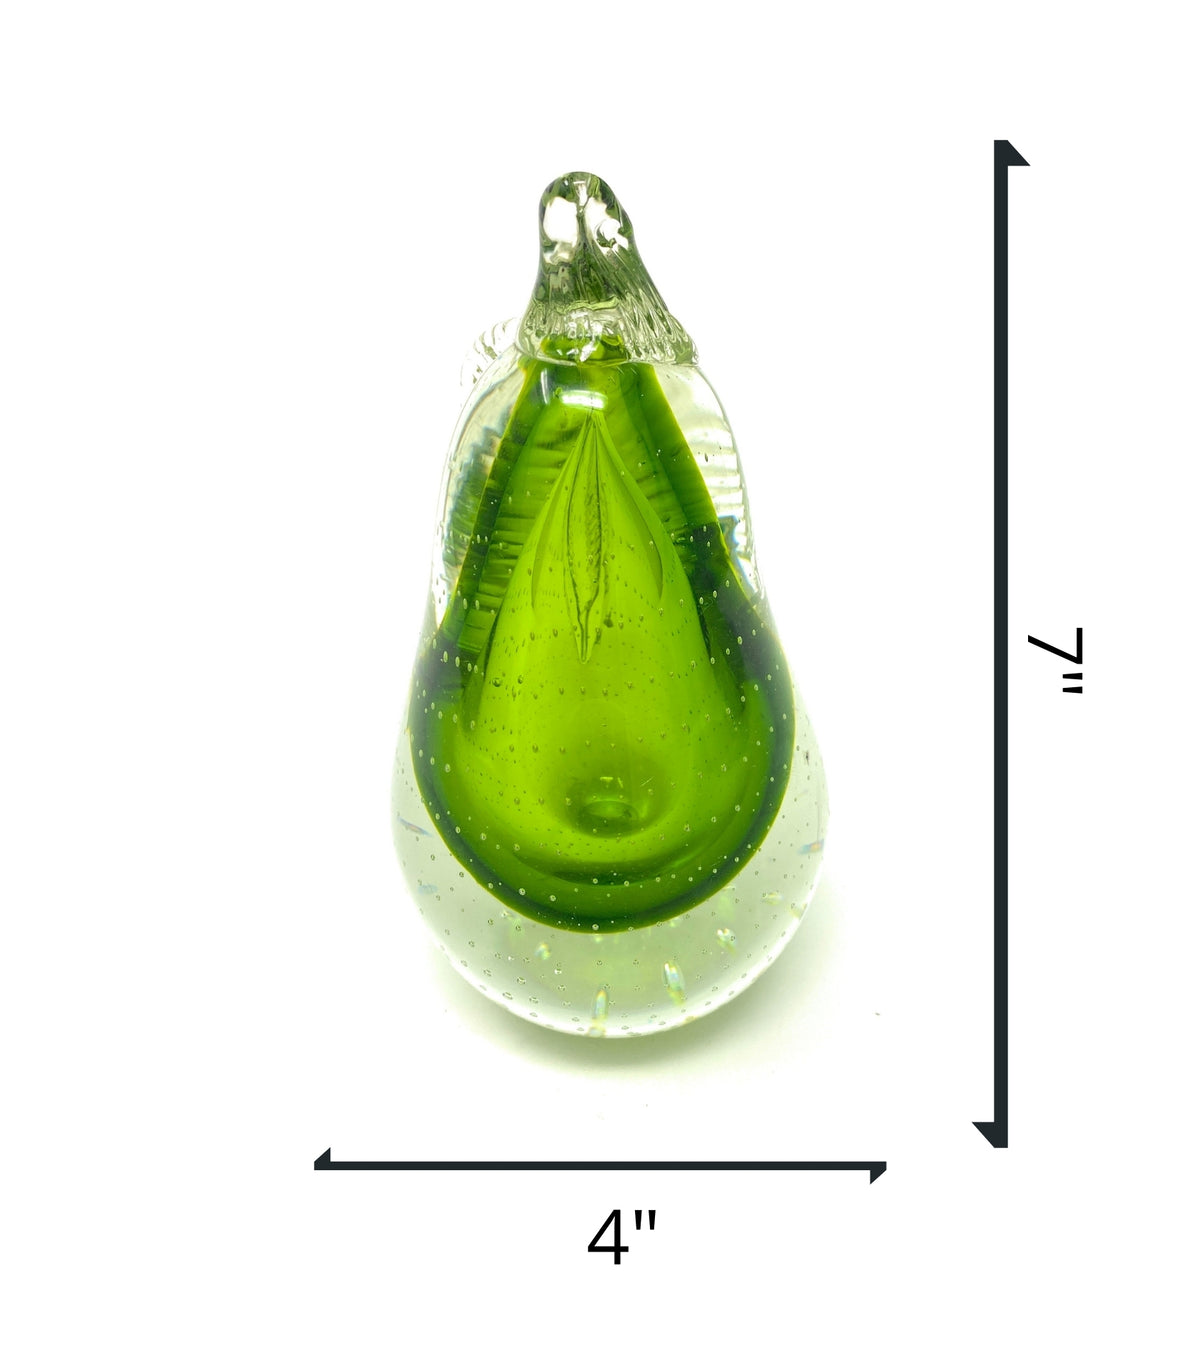 "New 7"" Hand Blown Glass Ultra Bright Pear Sculpture Figurine Different Color AvailableCrystal Xpress"